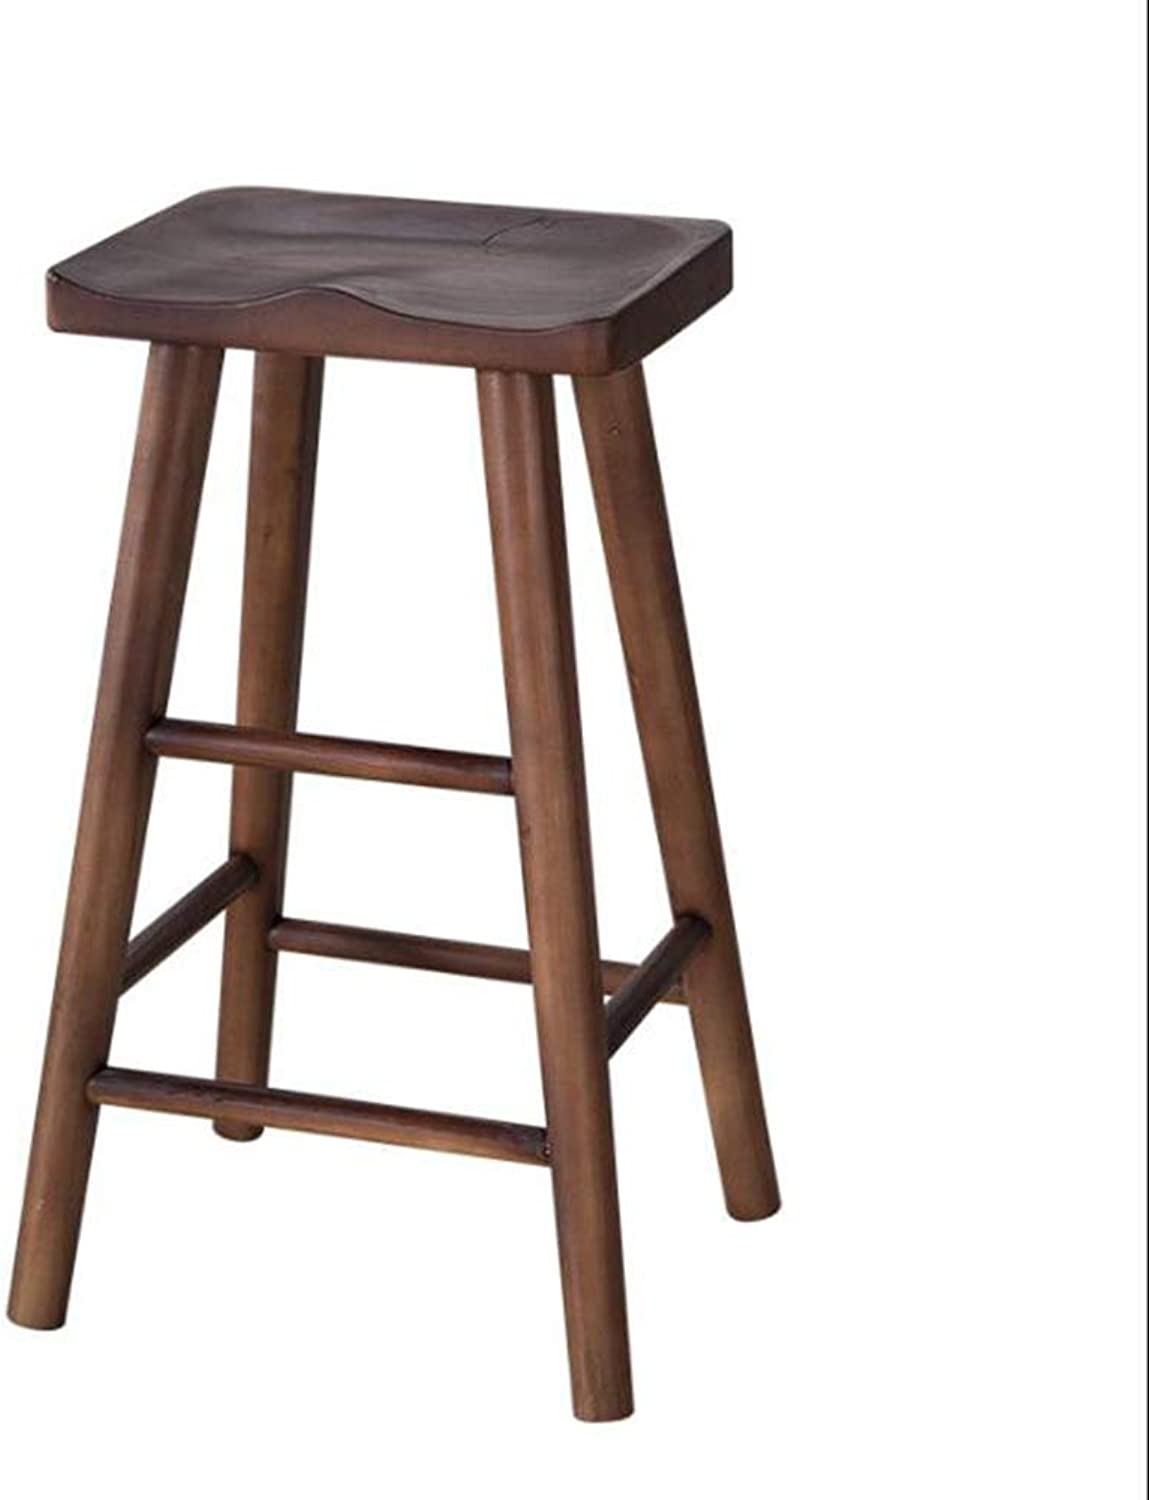 Solid Wood bar Chair, Household bar Chair Bar Stool High Chair Nordic Simple Modern High Stool, Dining Table Stool (color    2, Size   26  32  75cm)